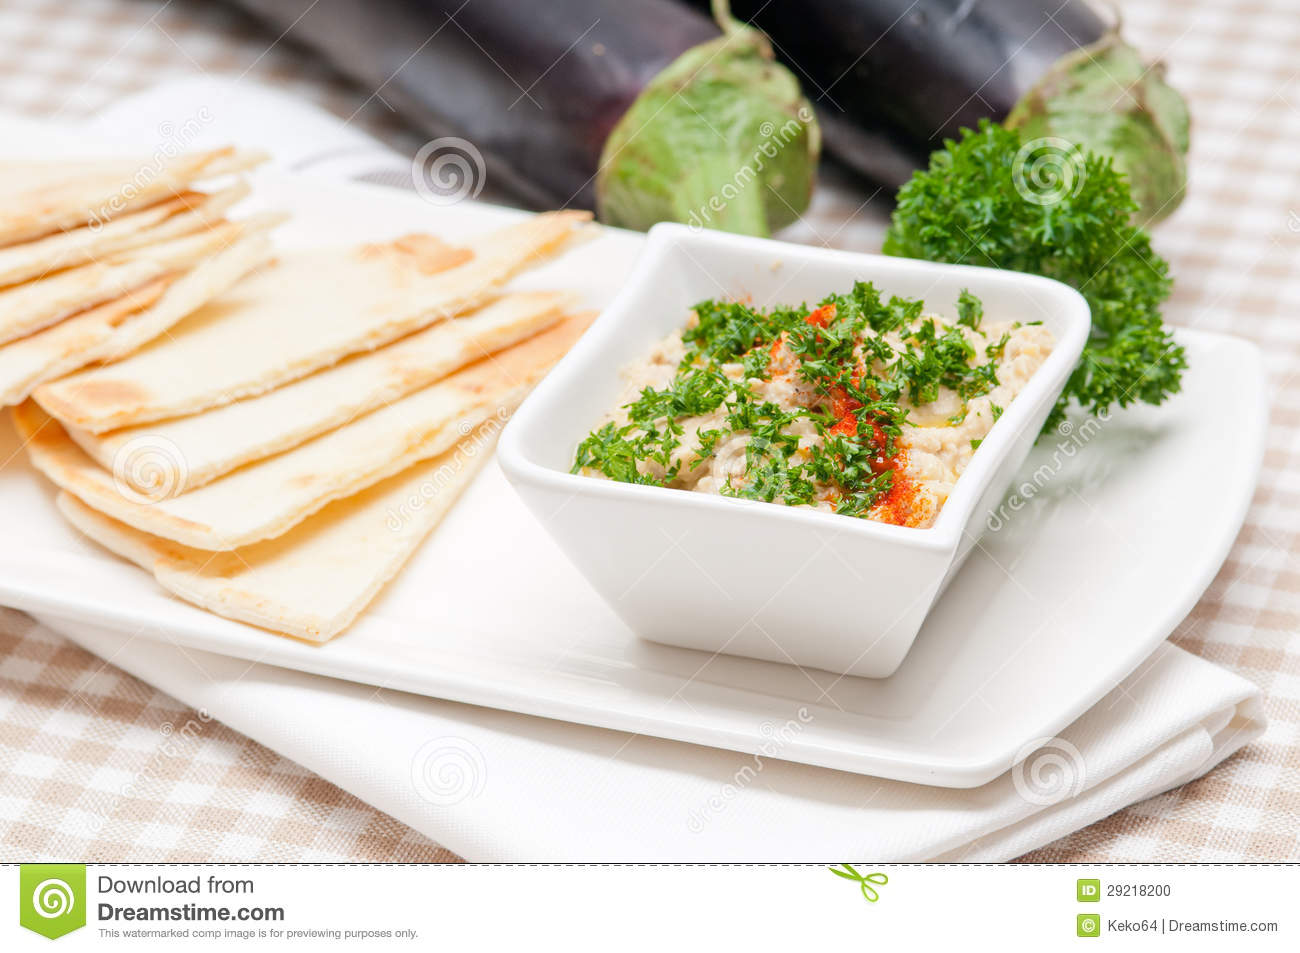 Moutabal Baba Ghanoush Eggplant Dip Stock Photo - Image: 29218200